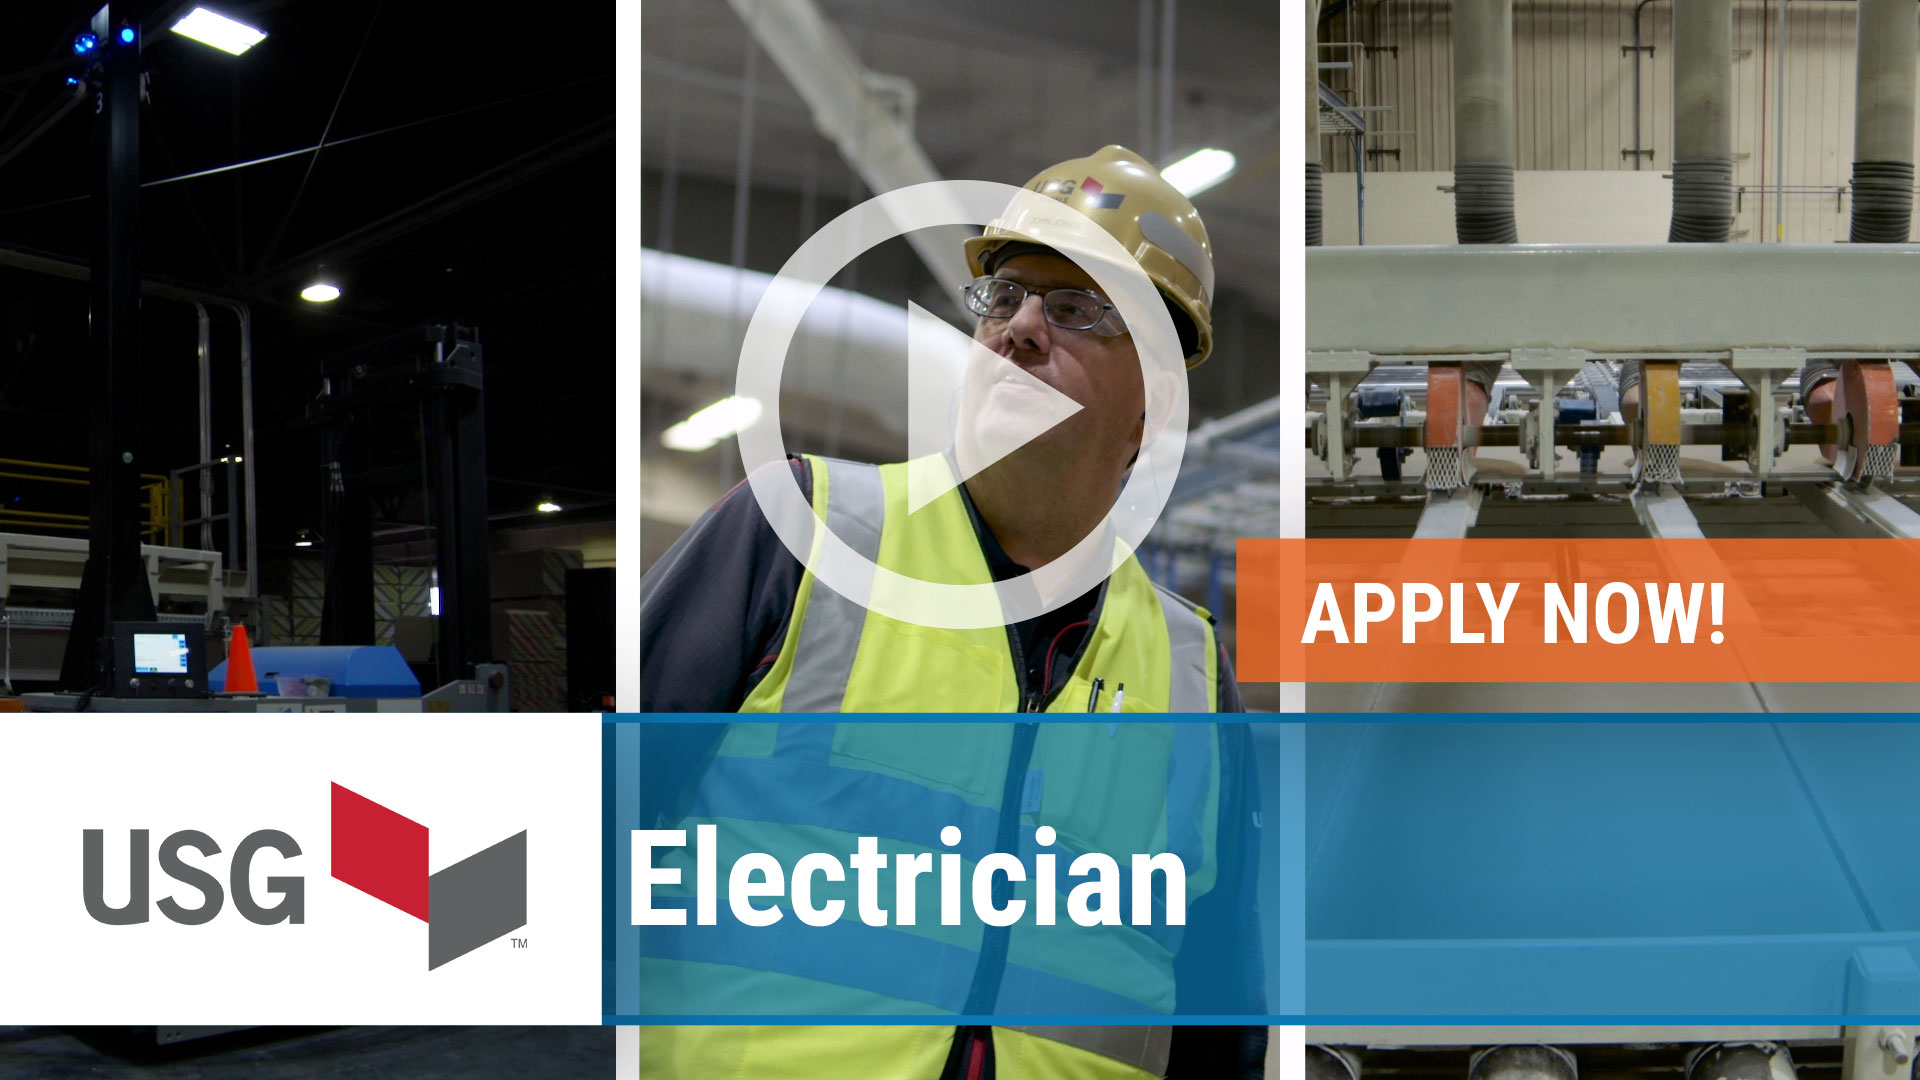 Watch our careers video for available job opening Electrician in Southard, OK, USA